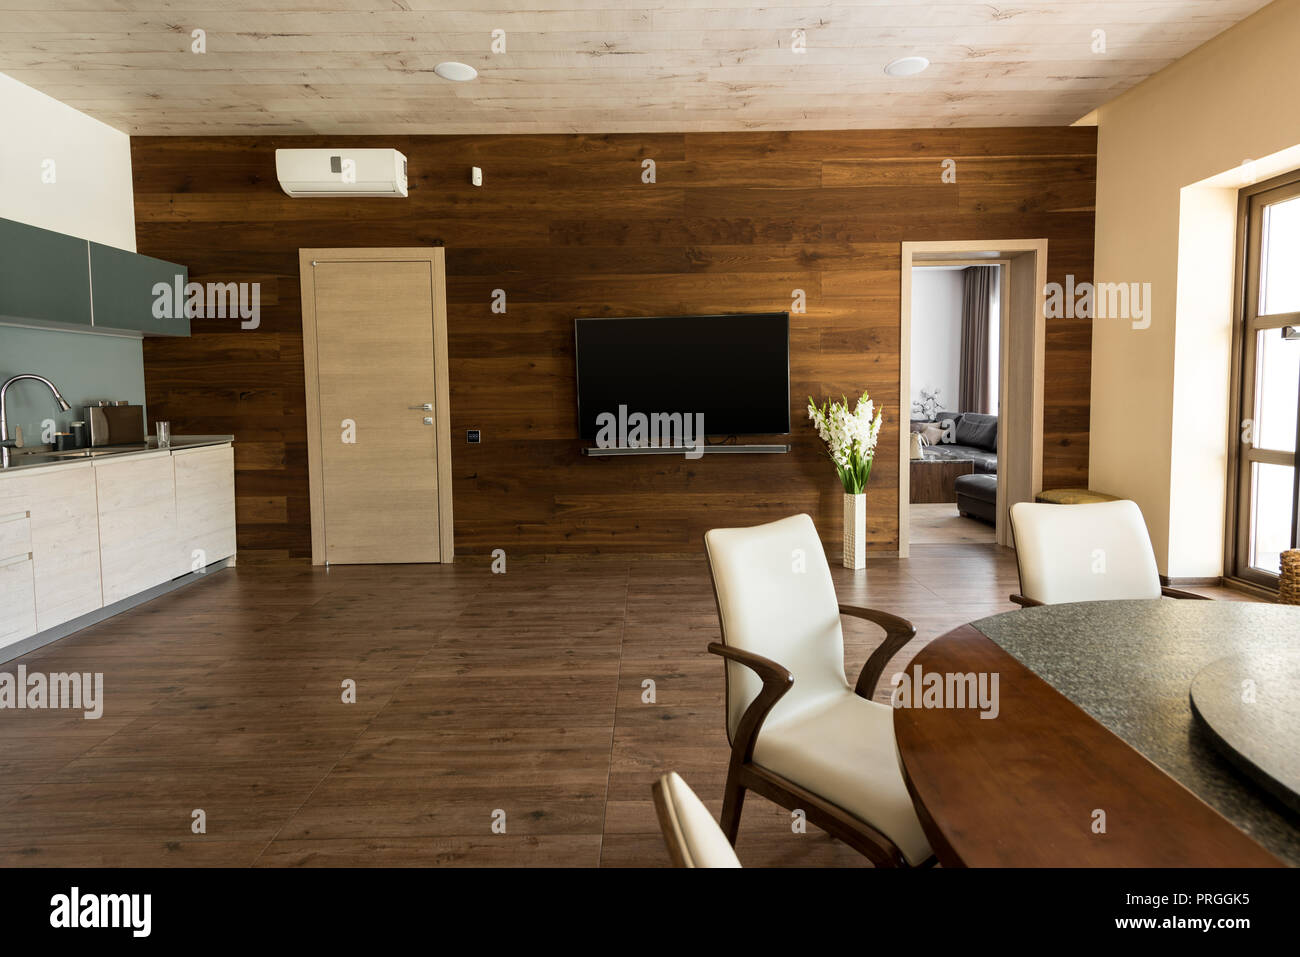 Interior Of Modern Kitchen And Dining Room With Table Chairs And Tv Set Stock Photo Alamy